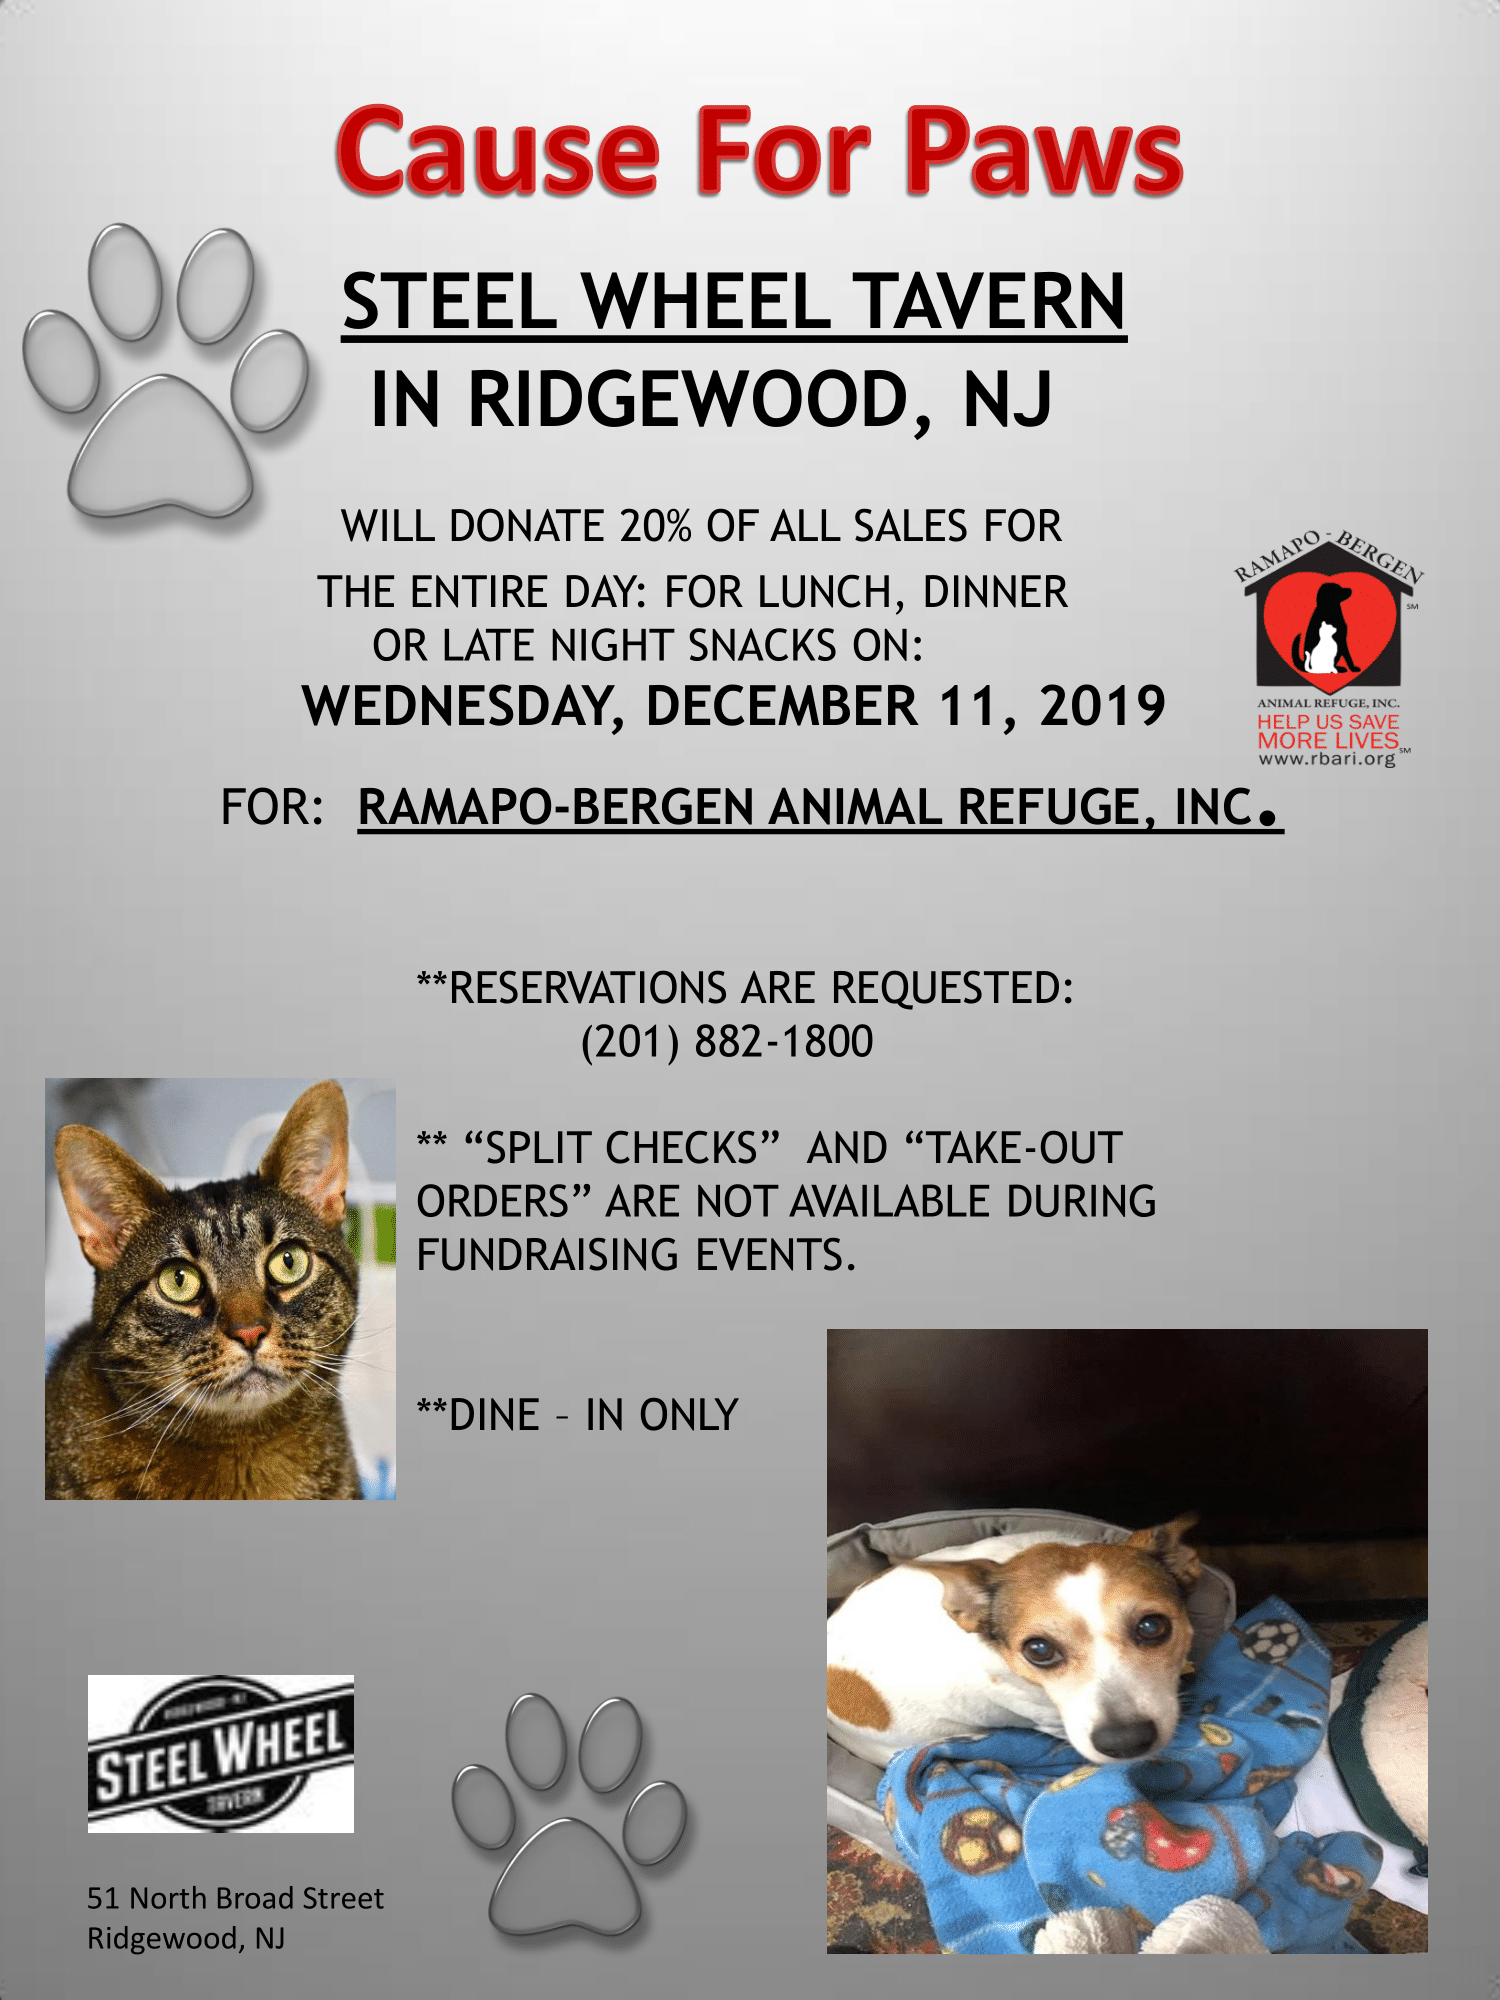 Cause for Paws at Steelwheel Tavern!